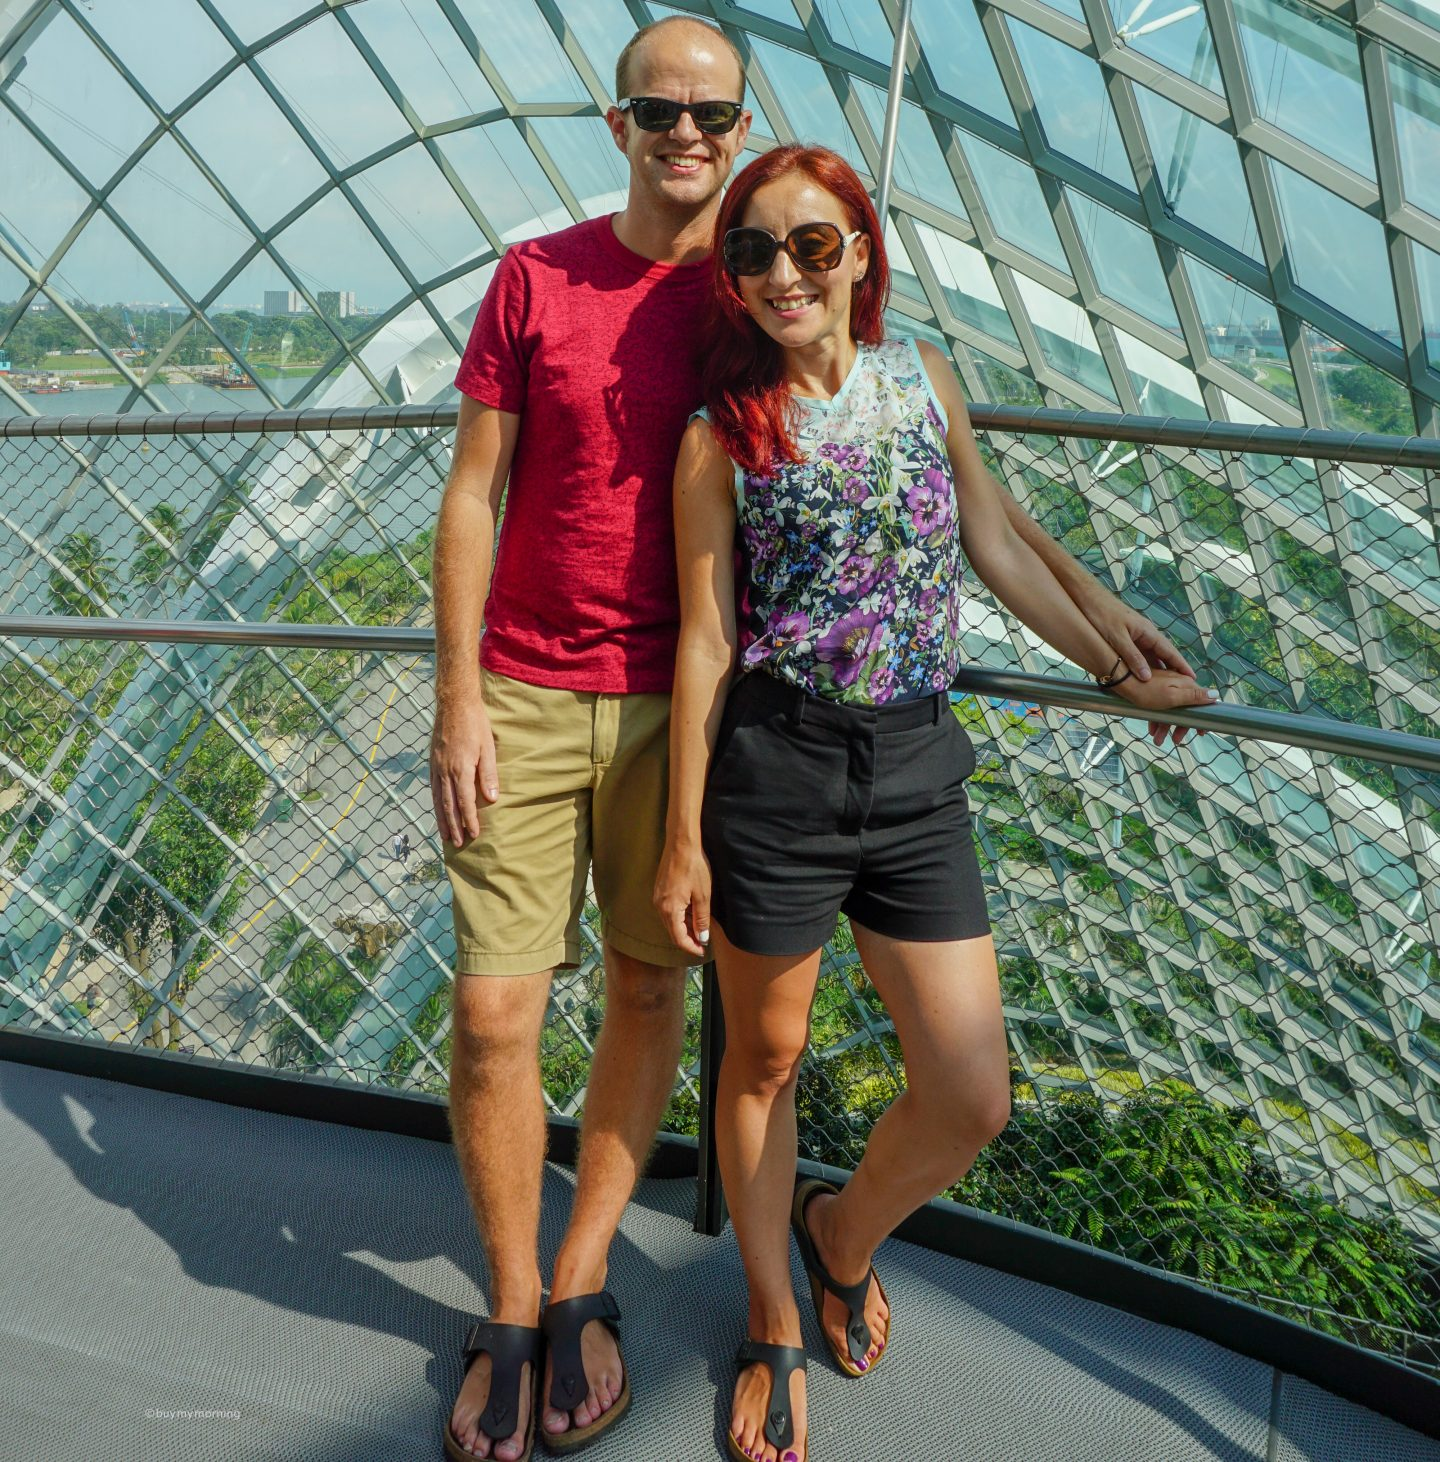 Dan and Fani posing for a photo together in the Cloud Forest Singapore | Buy My Morning